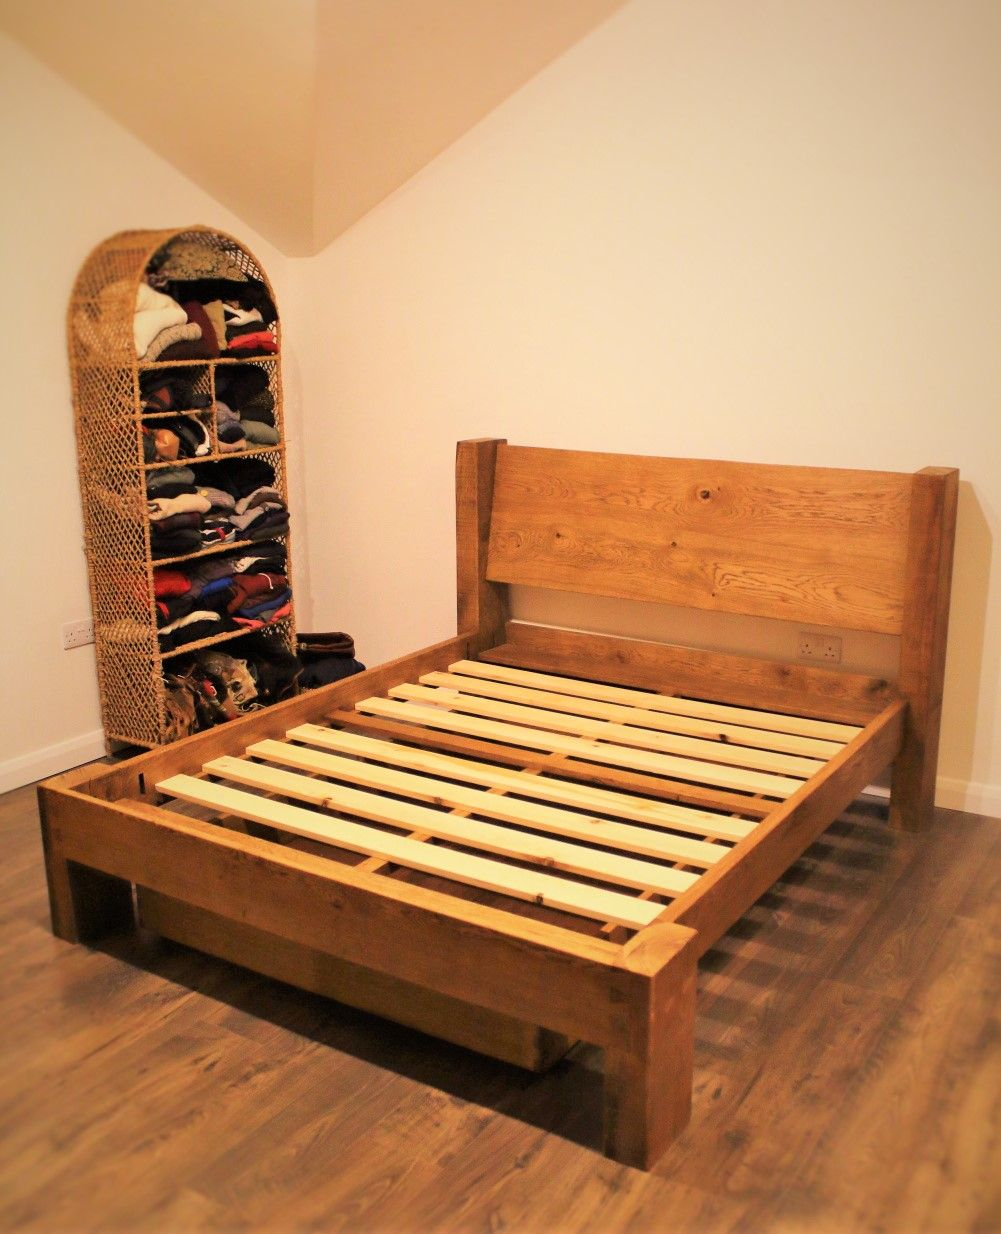 Our Custom Handmade Double Bed Features A Solid Oak Headboard And A Thick Reclaimed Wood Fsc Timb Wooden Bedroom Furniture Rustic Bedroom Furniture Furniture